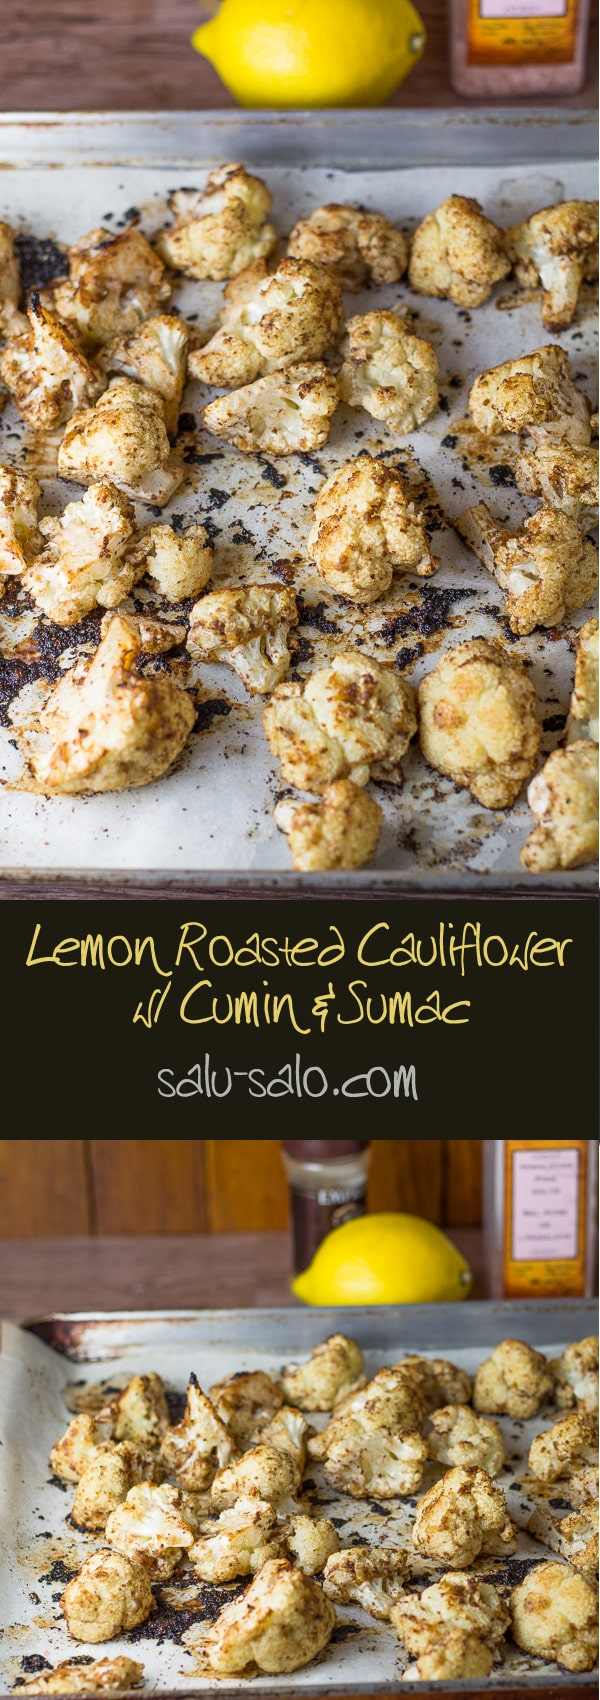 Lemon Roasted Cauliflower with Cumin and Sumac